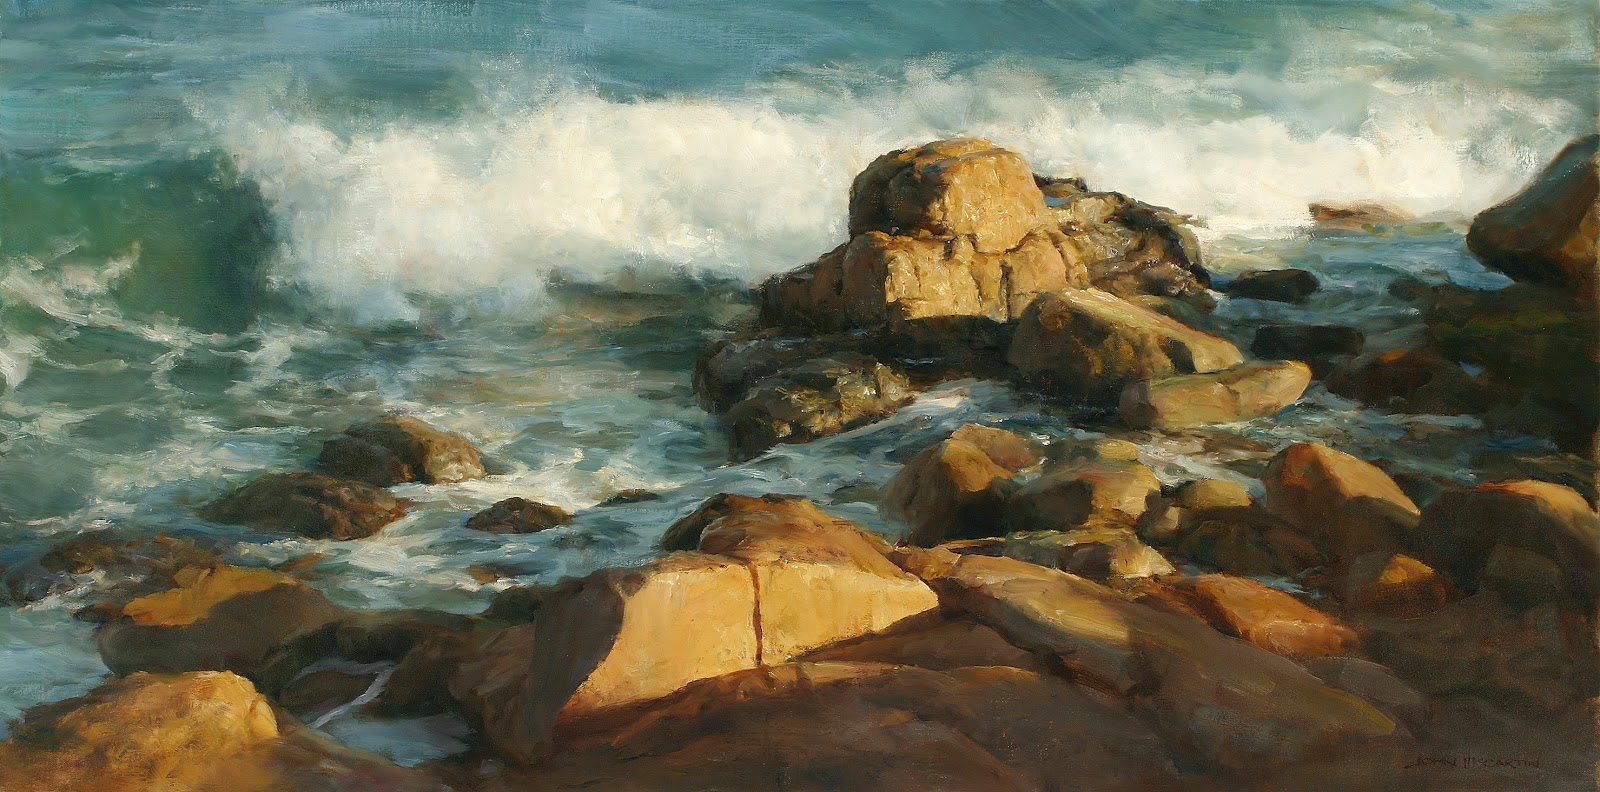 the rocky cove 21 75 x 43 5 oil mccartin displayed artistic talent as